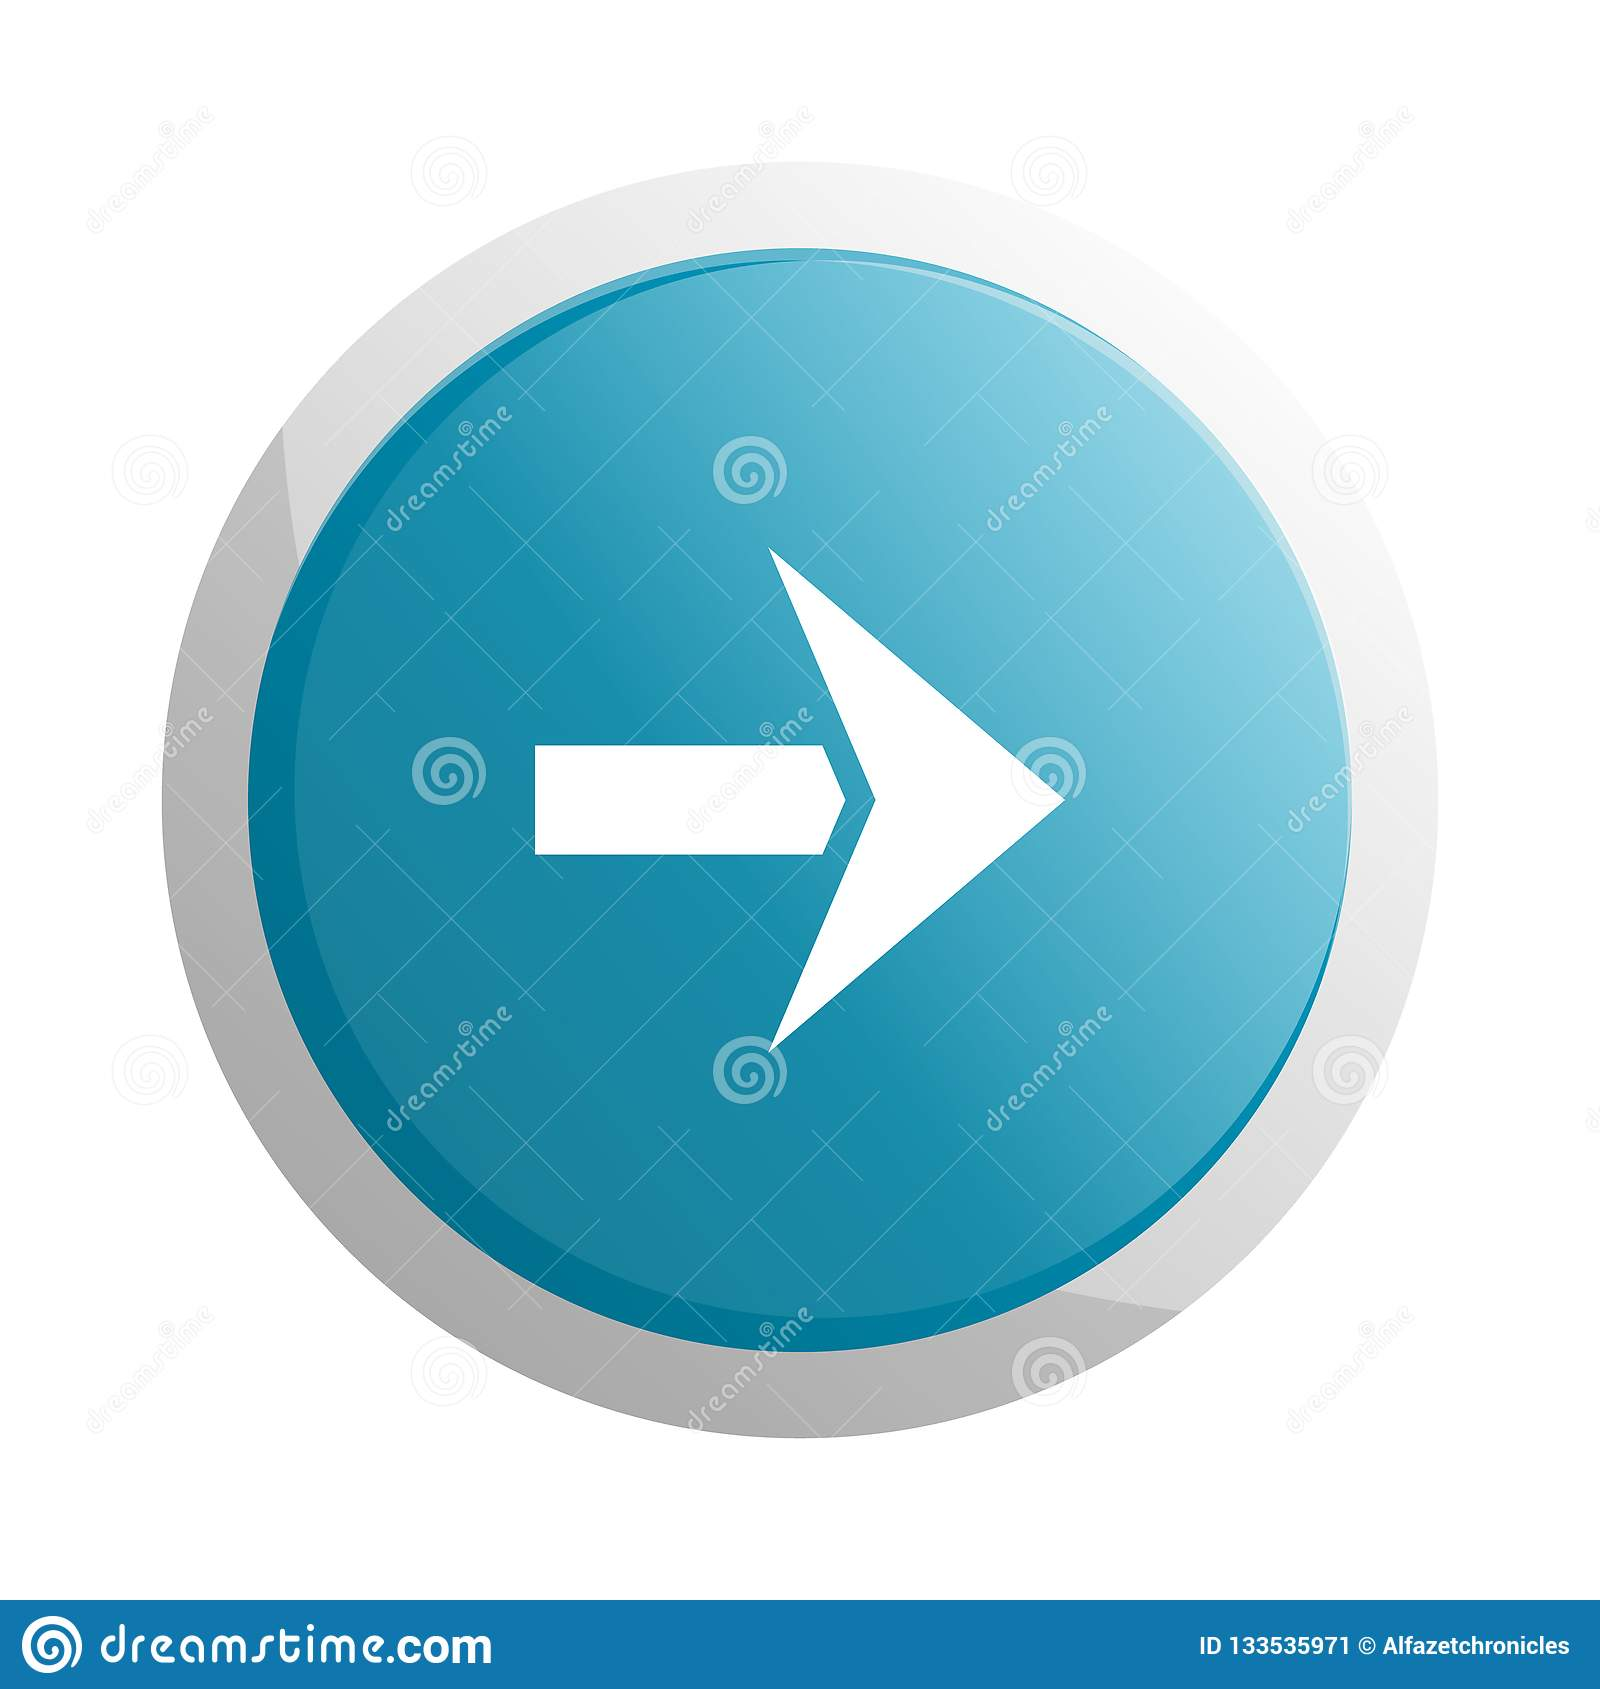 blue round button with